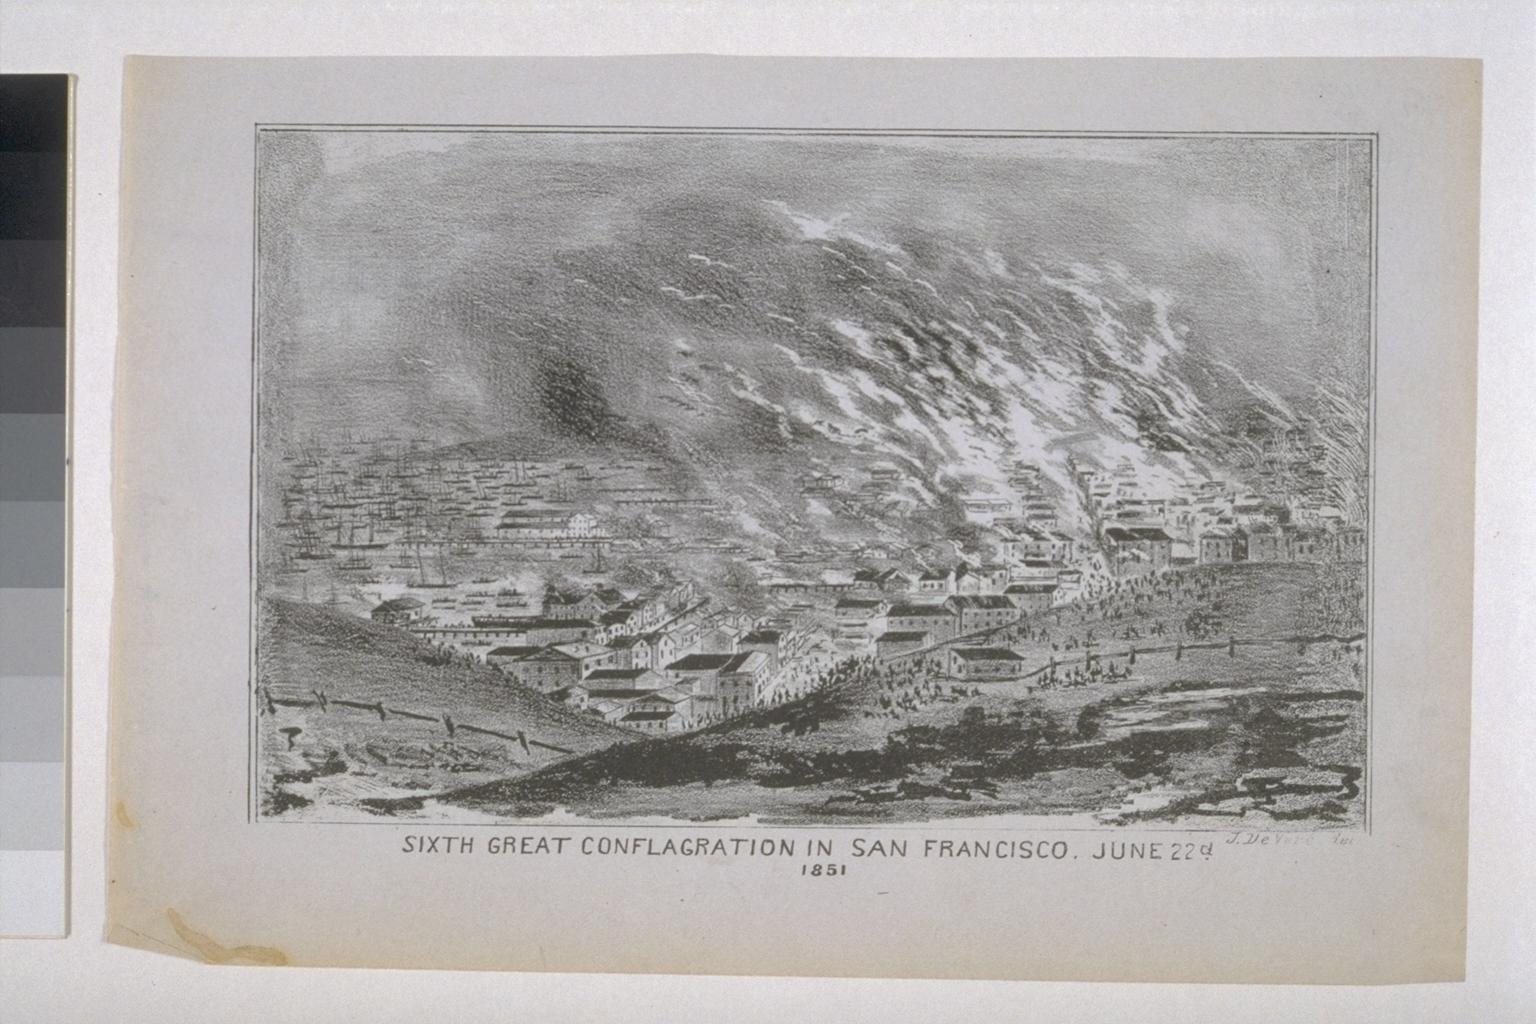 San Francisco fire (1851).